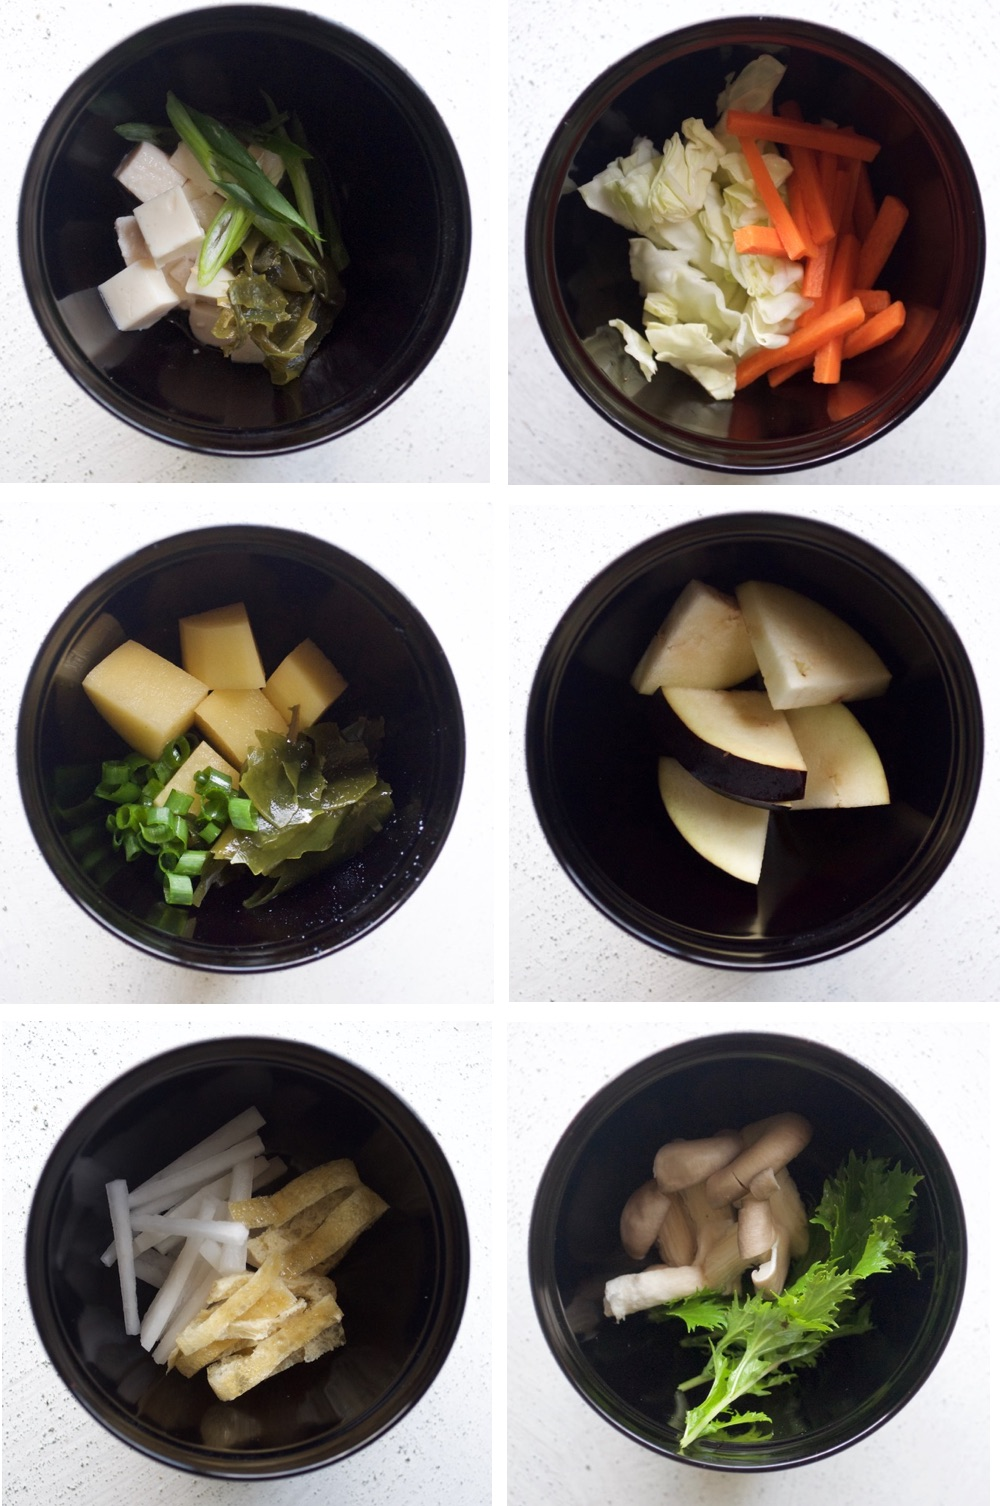 Miso soup ingredient combinations which are my favourites. You can be very creative and come up with many different combinations.